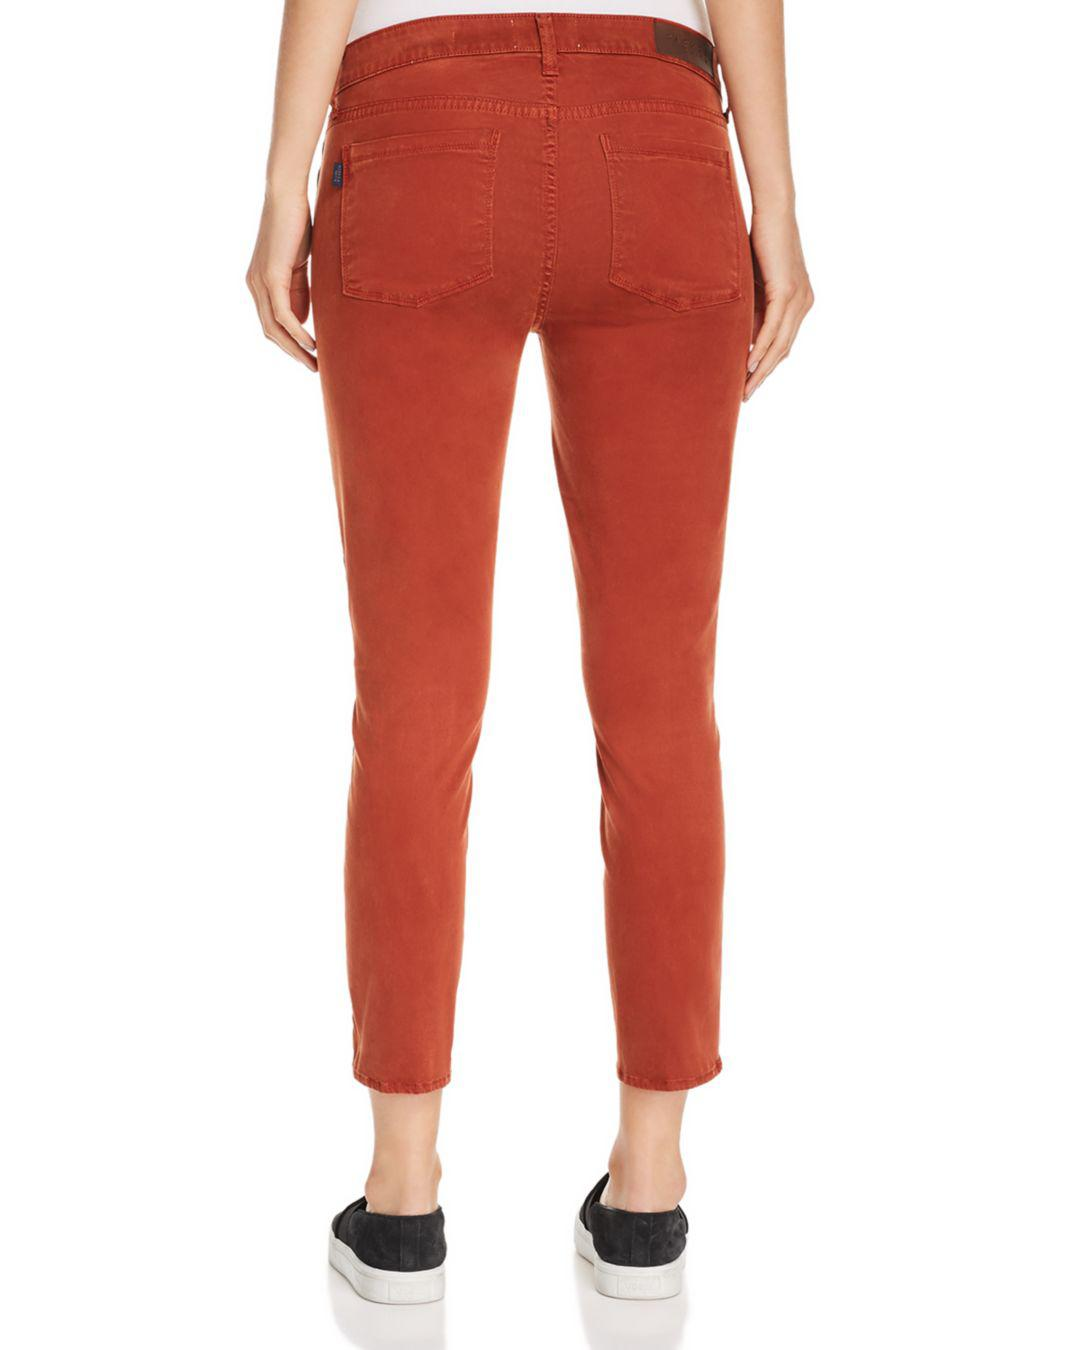 8082a6c54b Lyst - Parker Smith Twisted Seam Crop Skinny Jeans In Whiskey in Red